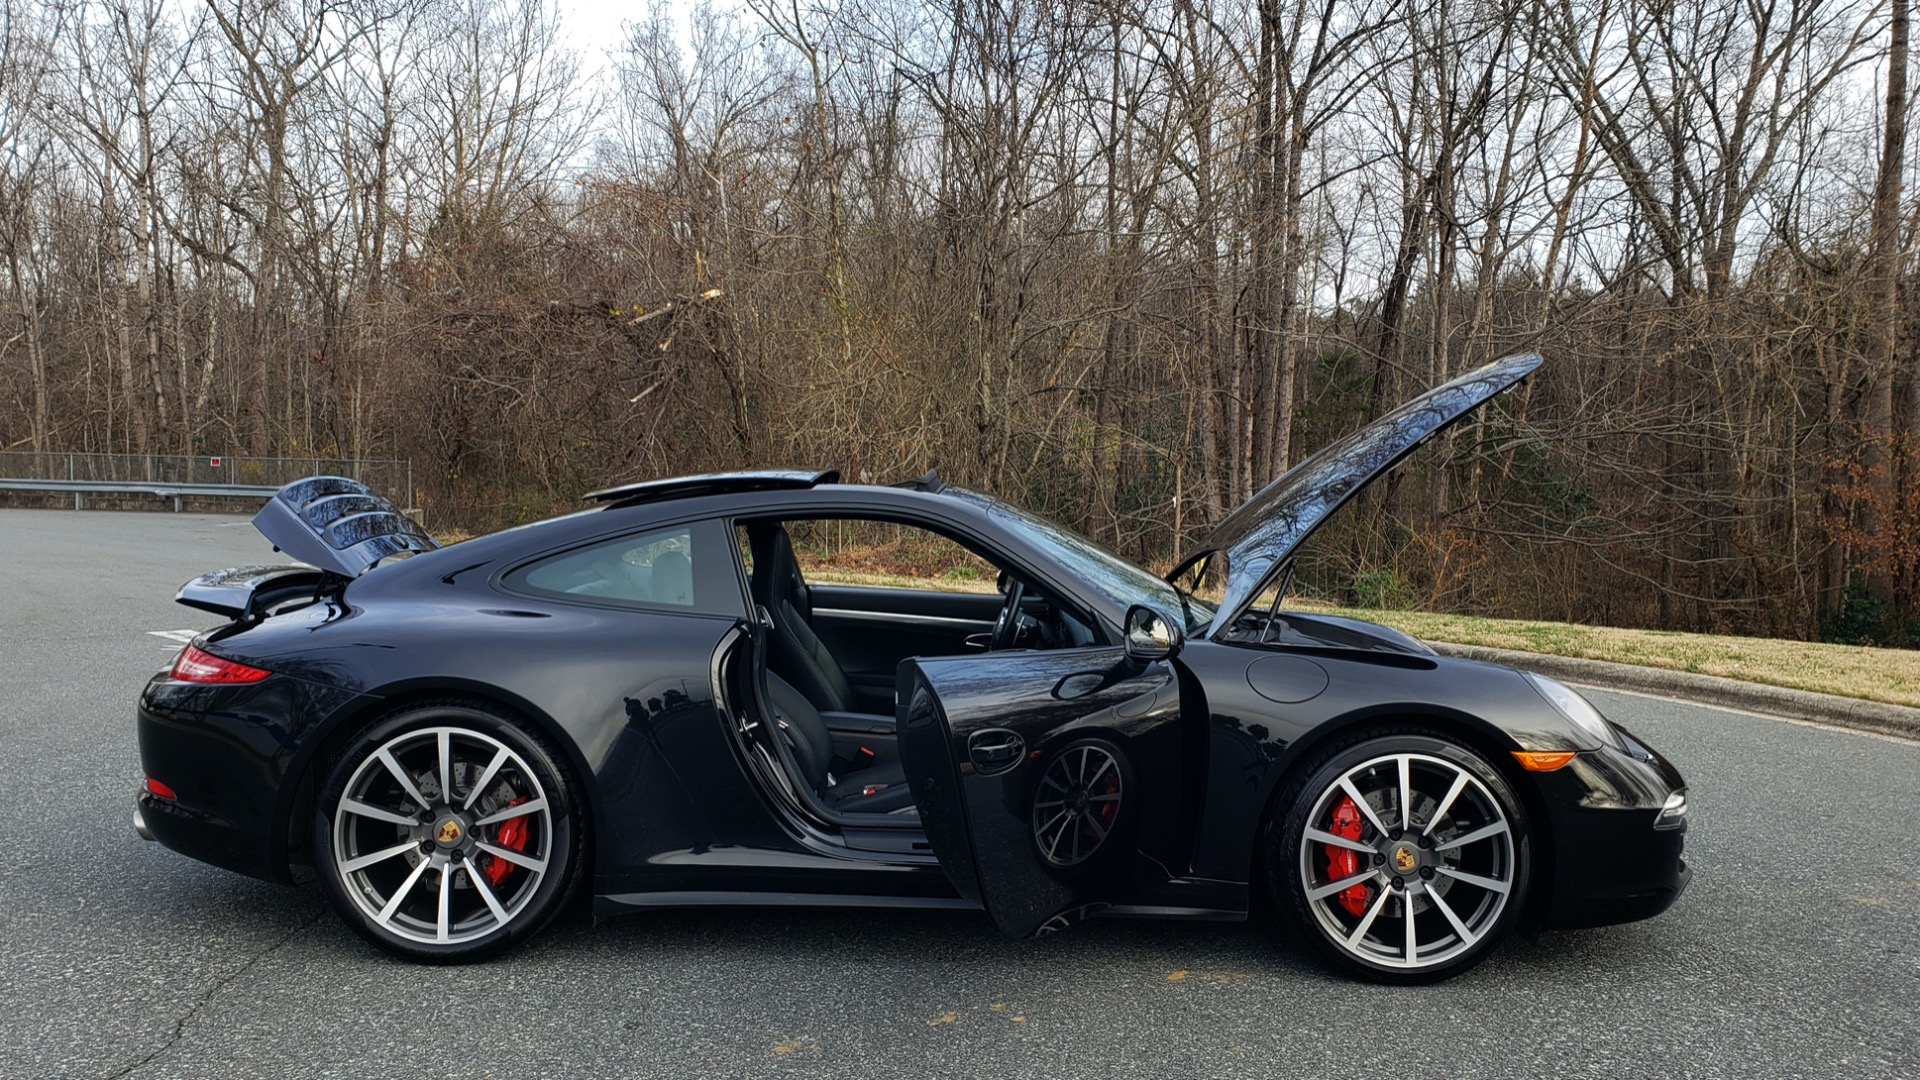 Used 2014 Porsche 911 CARRERA 4S / PREM PKG PLUS / NAV / SUNROO / BOSE / CHRONO for sale Sold at Formula Imports in Charlotte NC 28227 23